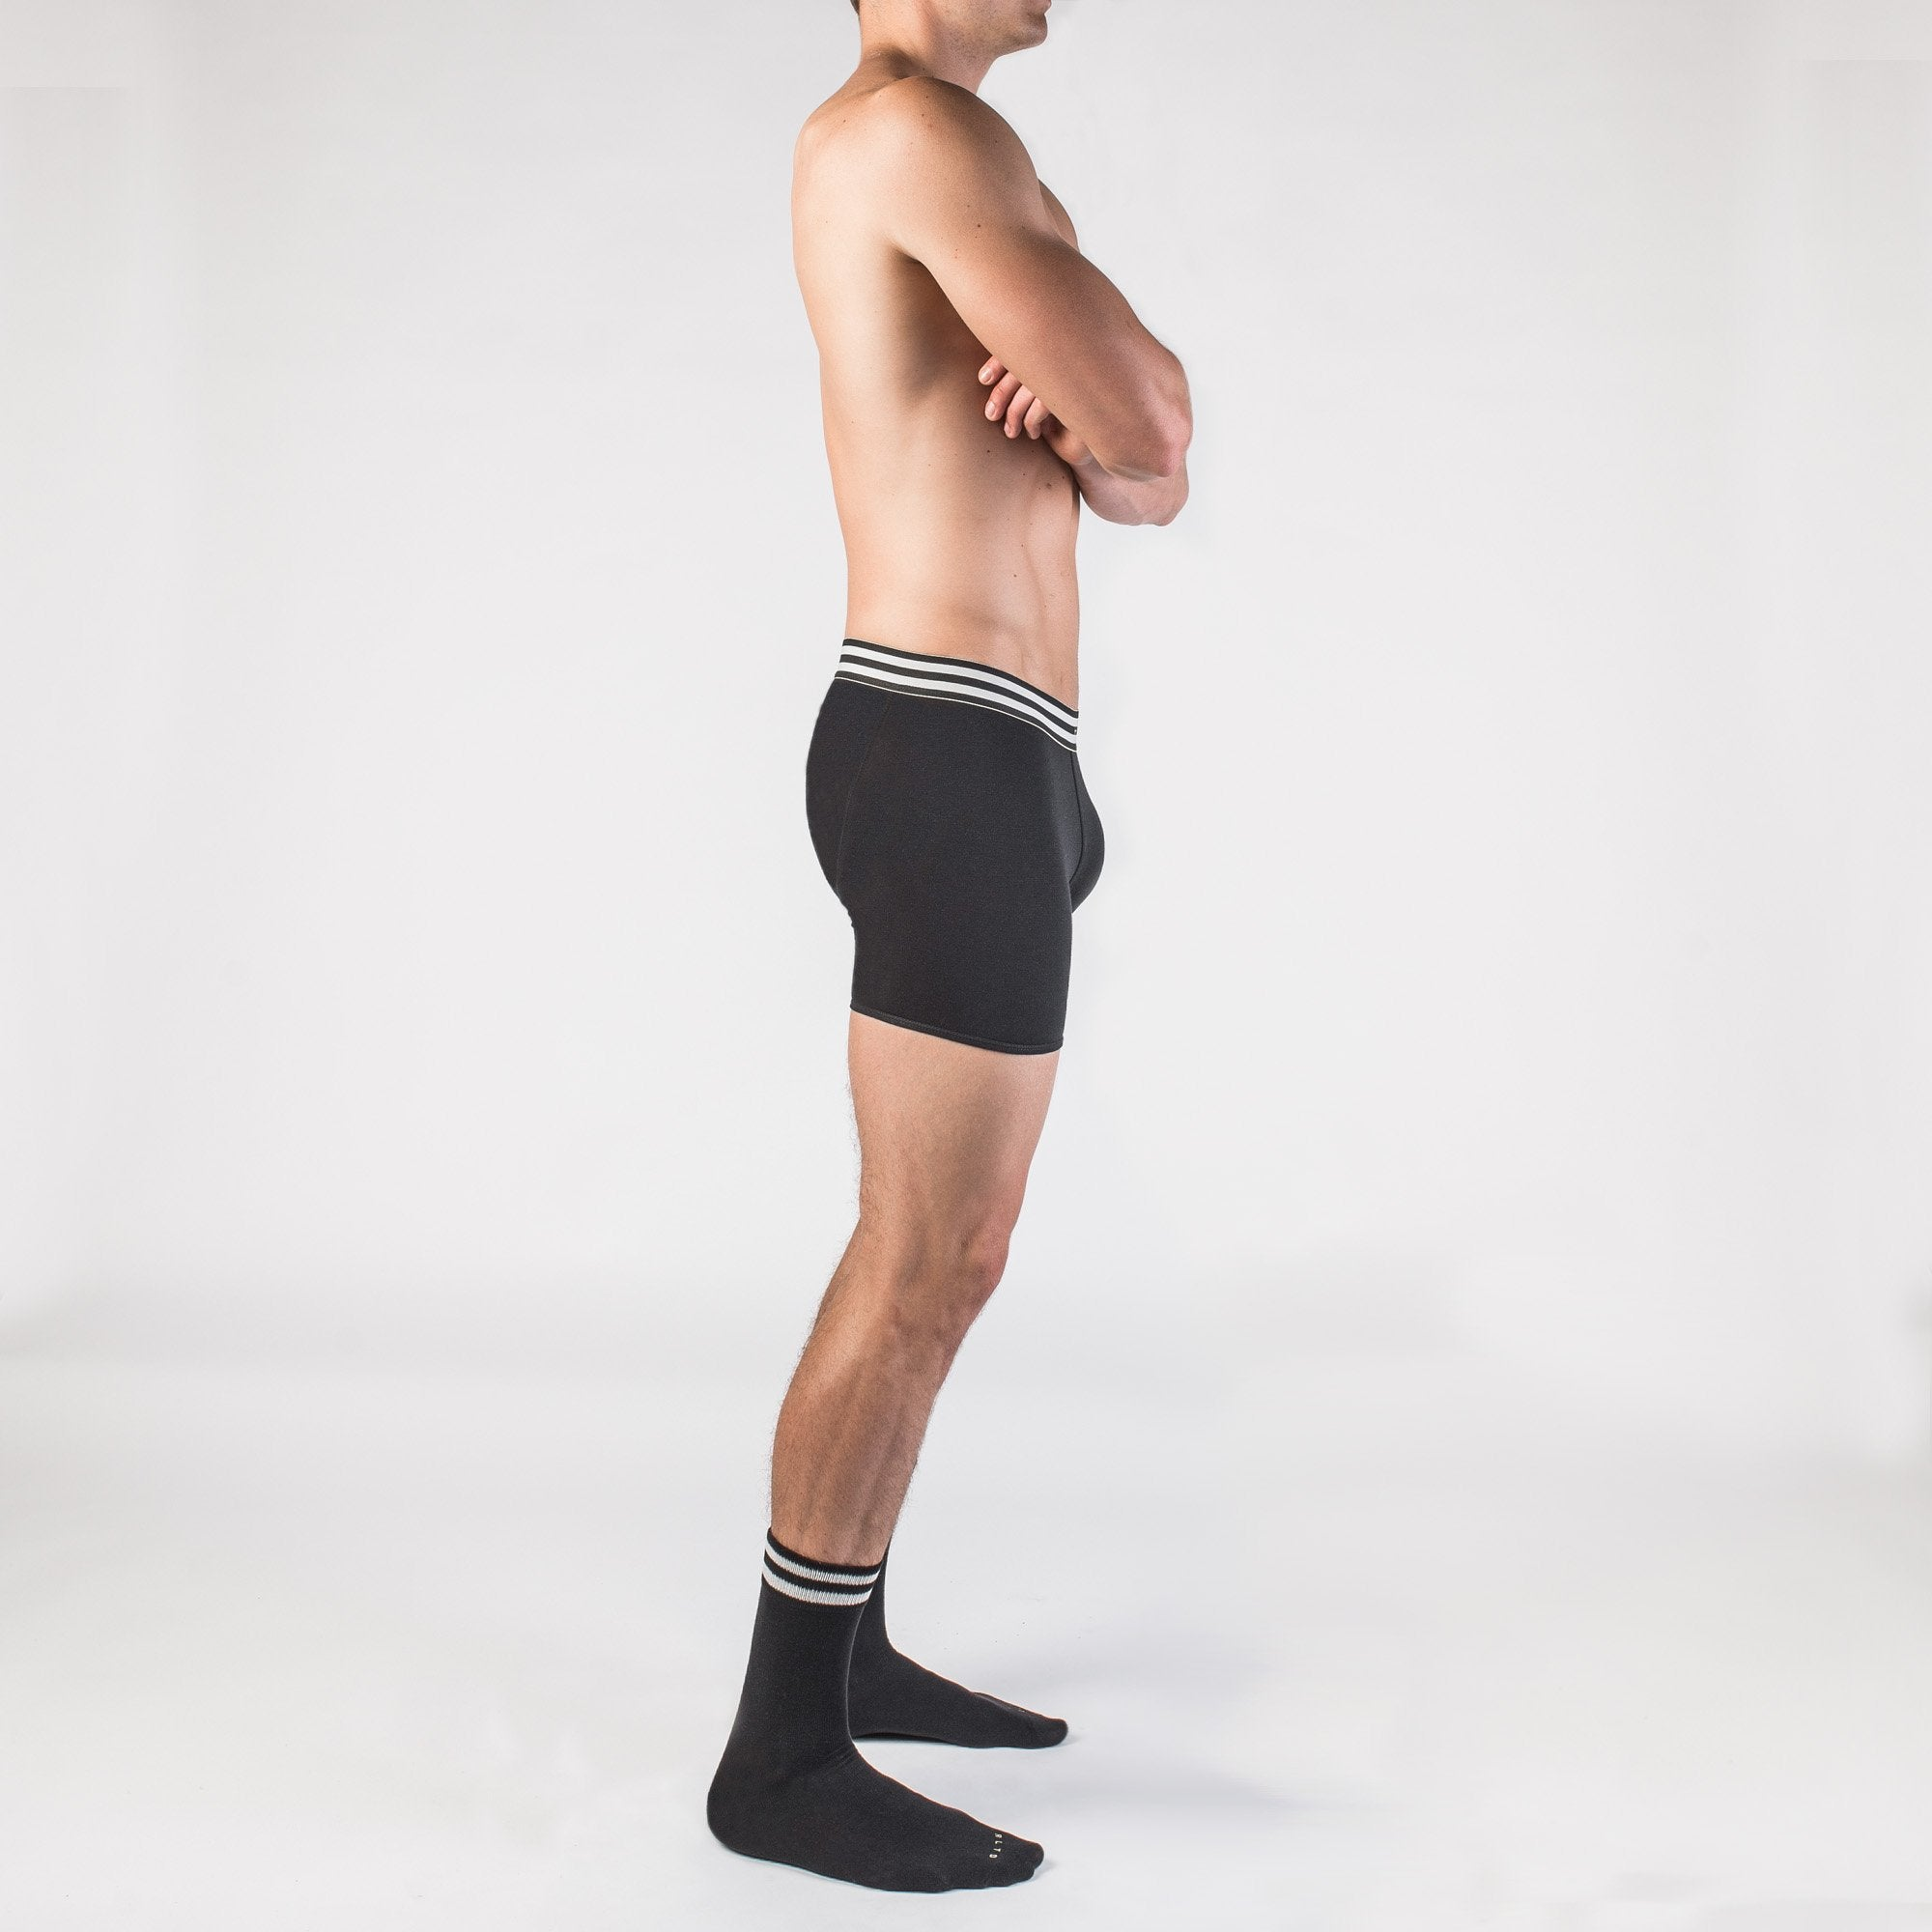 Underwear & Socks - The Racer 3-Pack